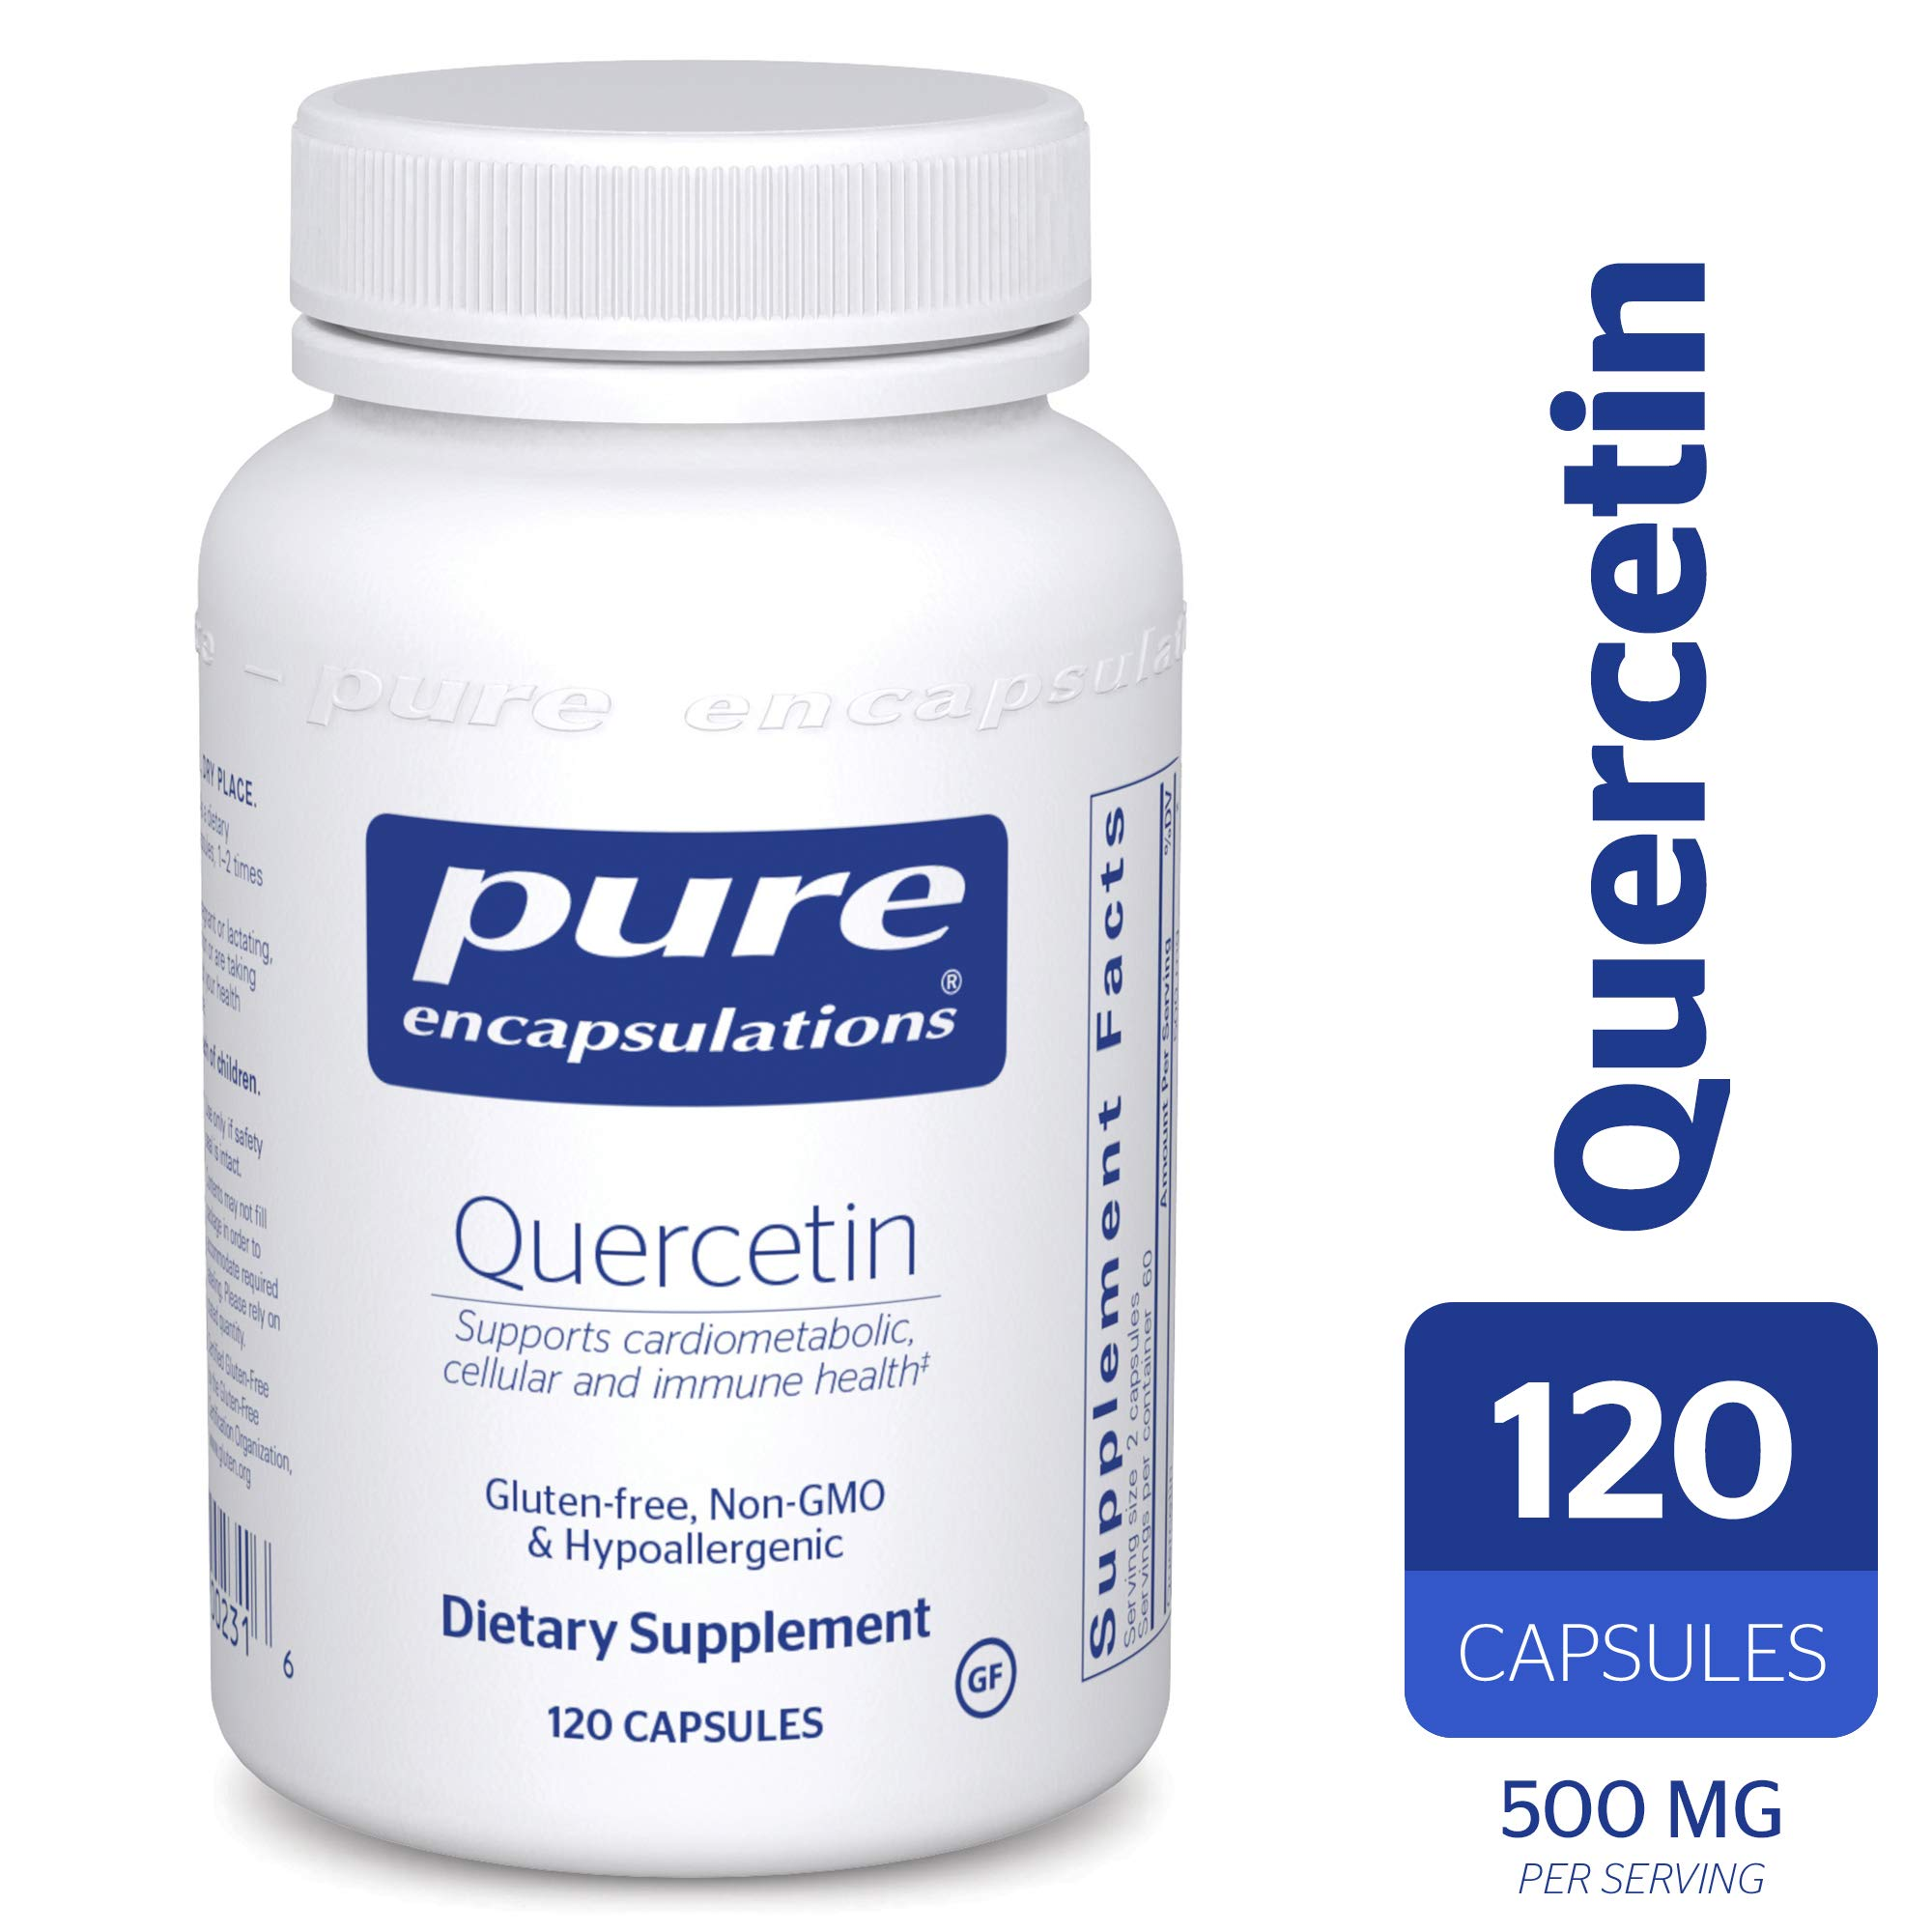 Pure Encapsulations - Quercetin - Hypoallergenic Supplement with Bioflavonoids for Cellular, Cardiometabolic and Immune Health* - 120 Capsules by Pure Encapsulations